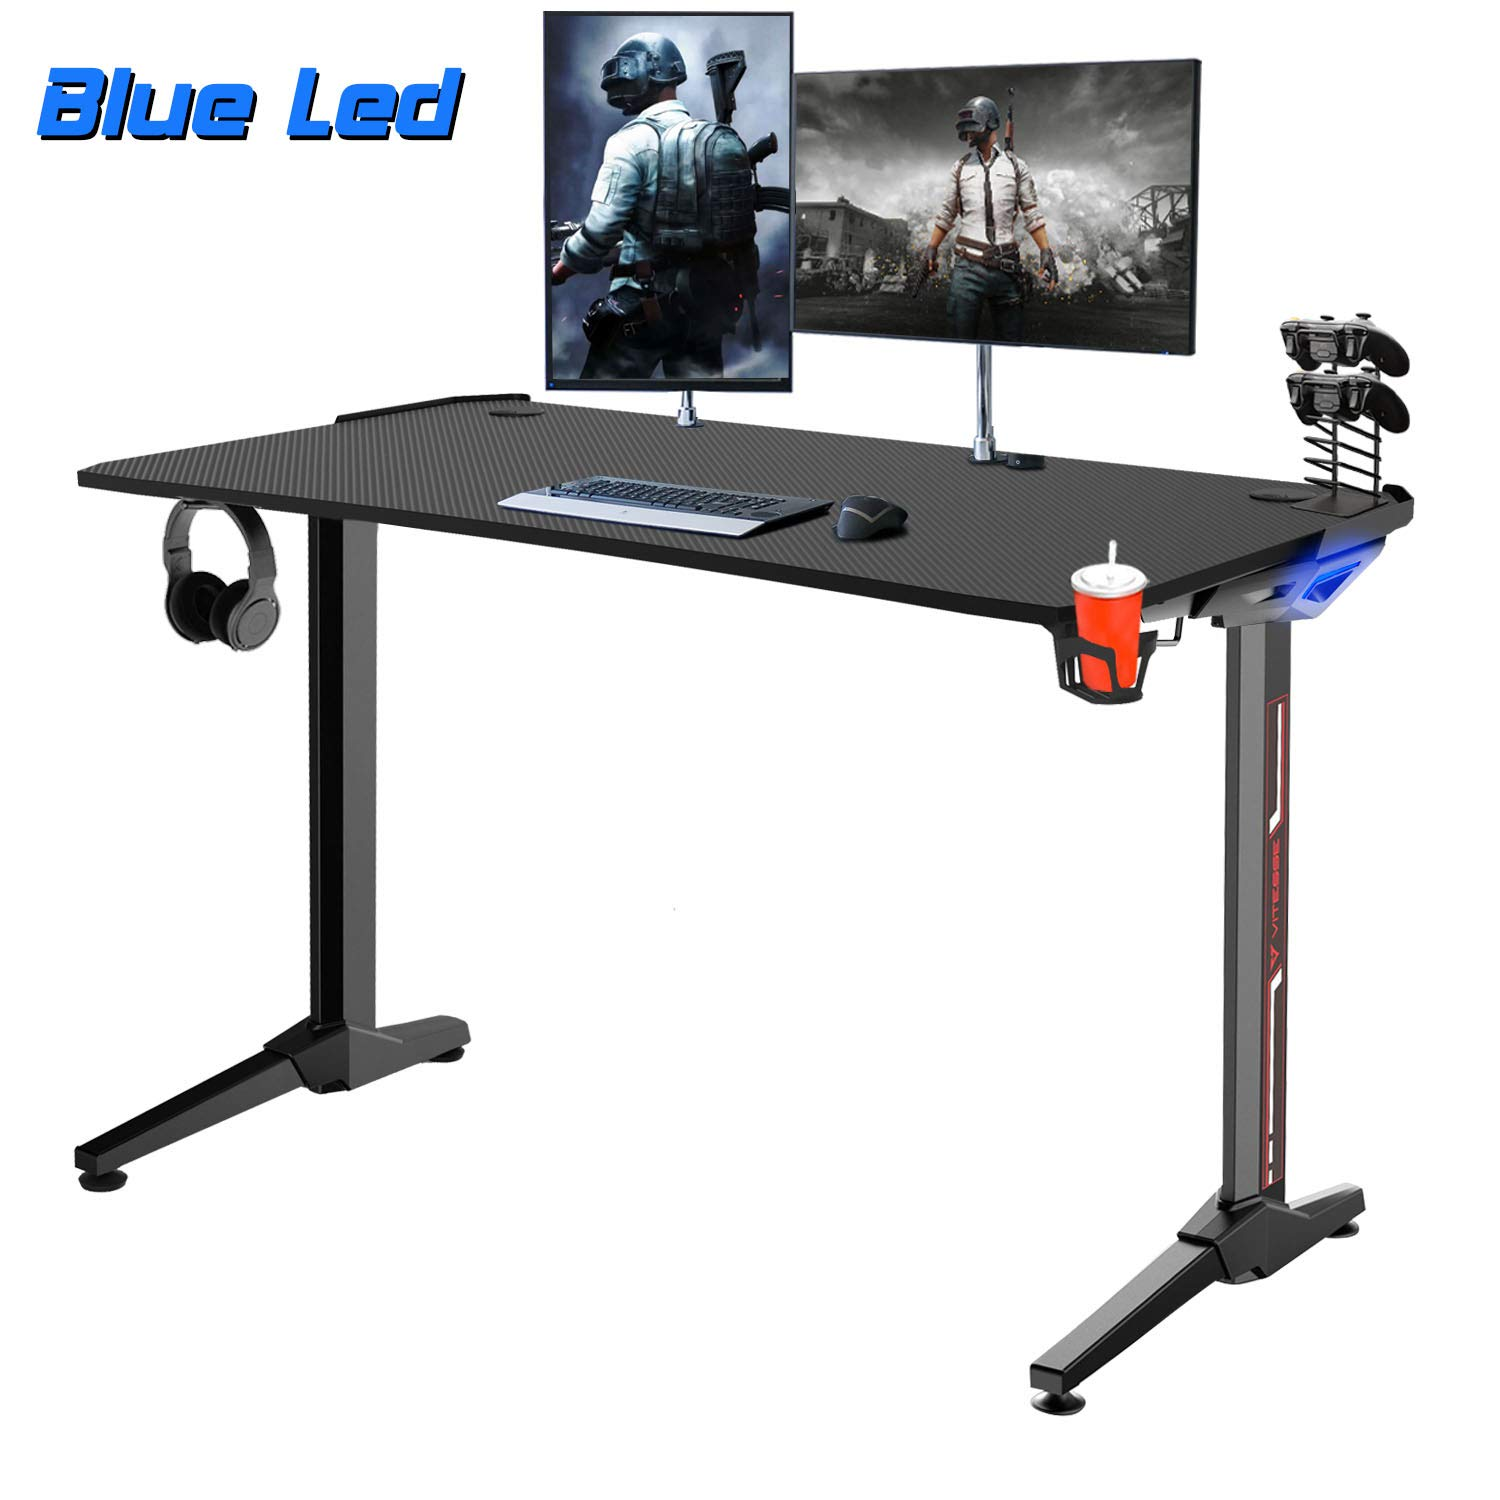 "Vitesse 55"" Super Larger Gaming Desk Racing Style Computer Table"